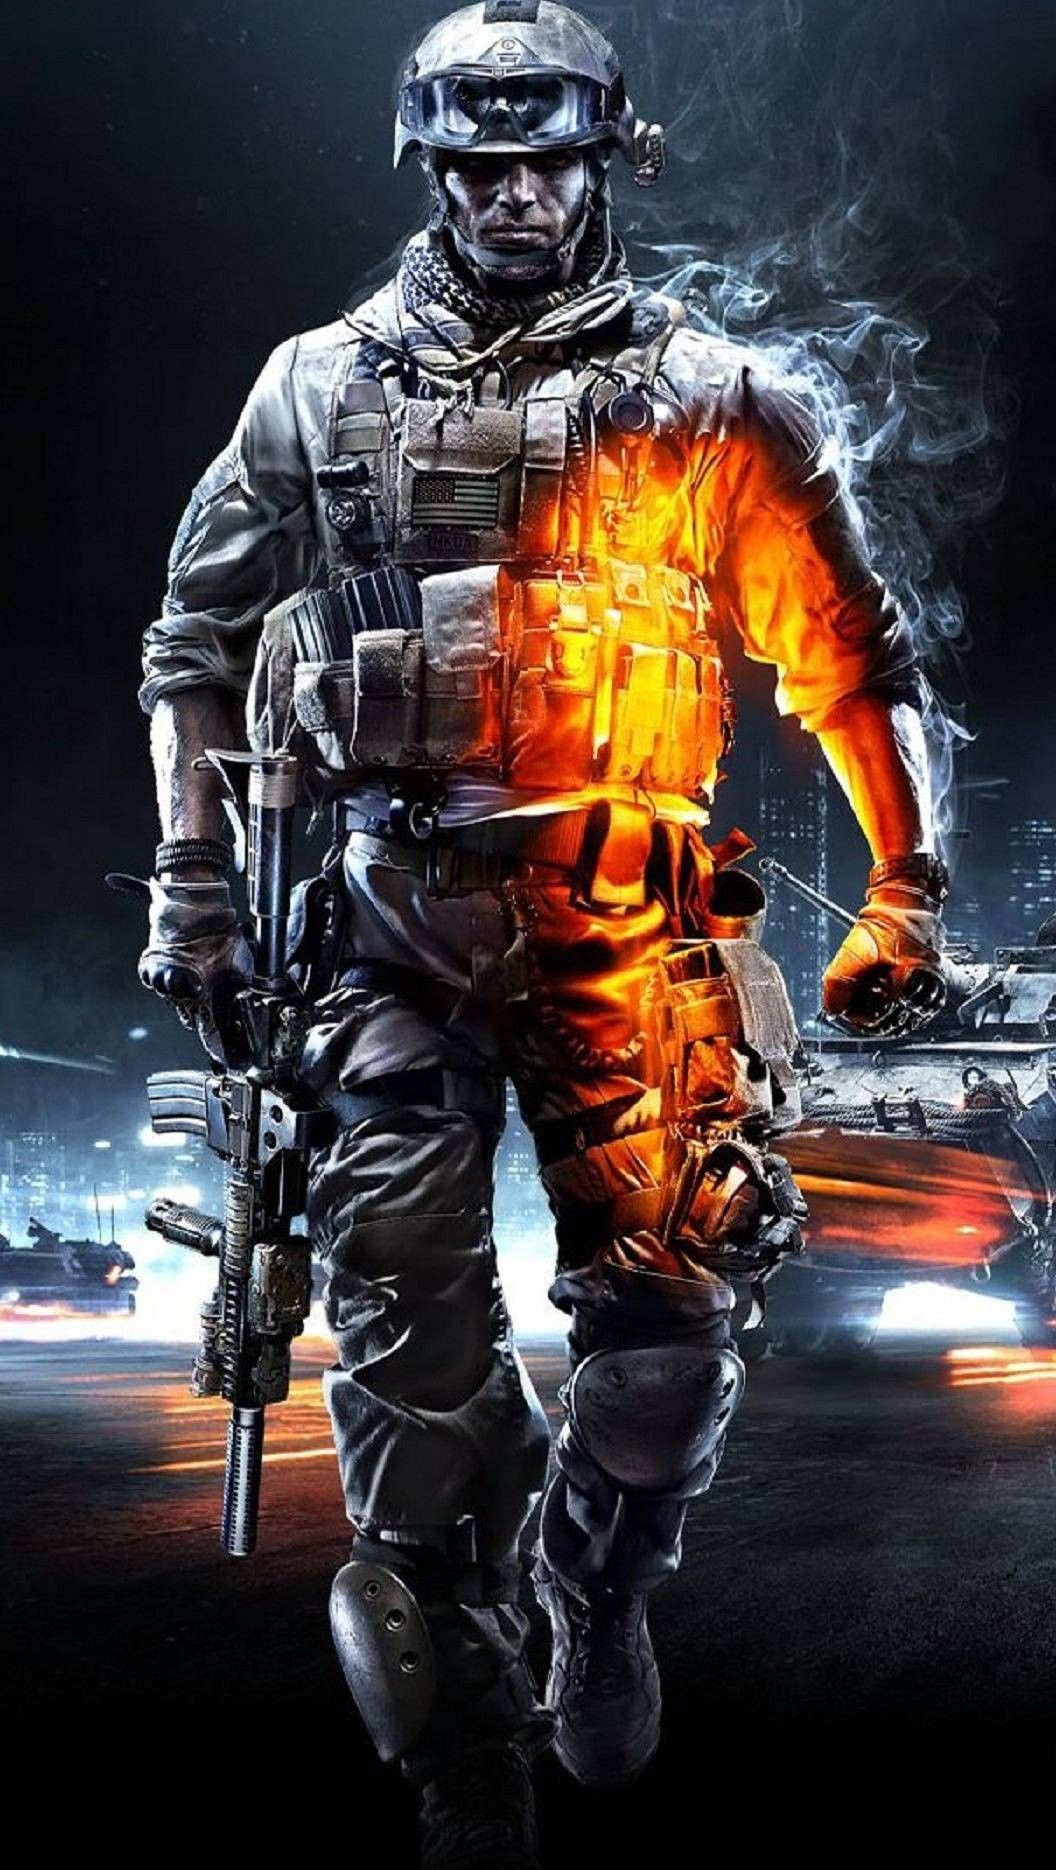 Battlefield 3 Military Wallpaper Army Wallpaper Indian Army Wallpapers Lock screen iphone indian army wallpaper